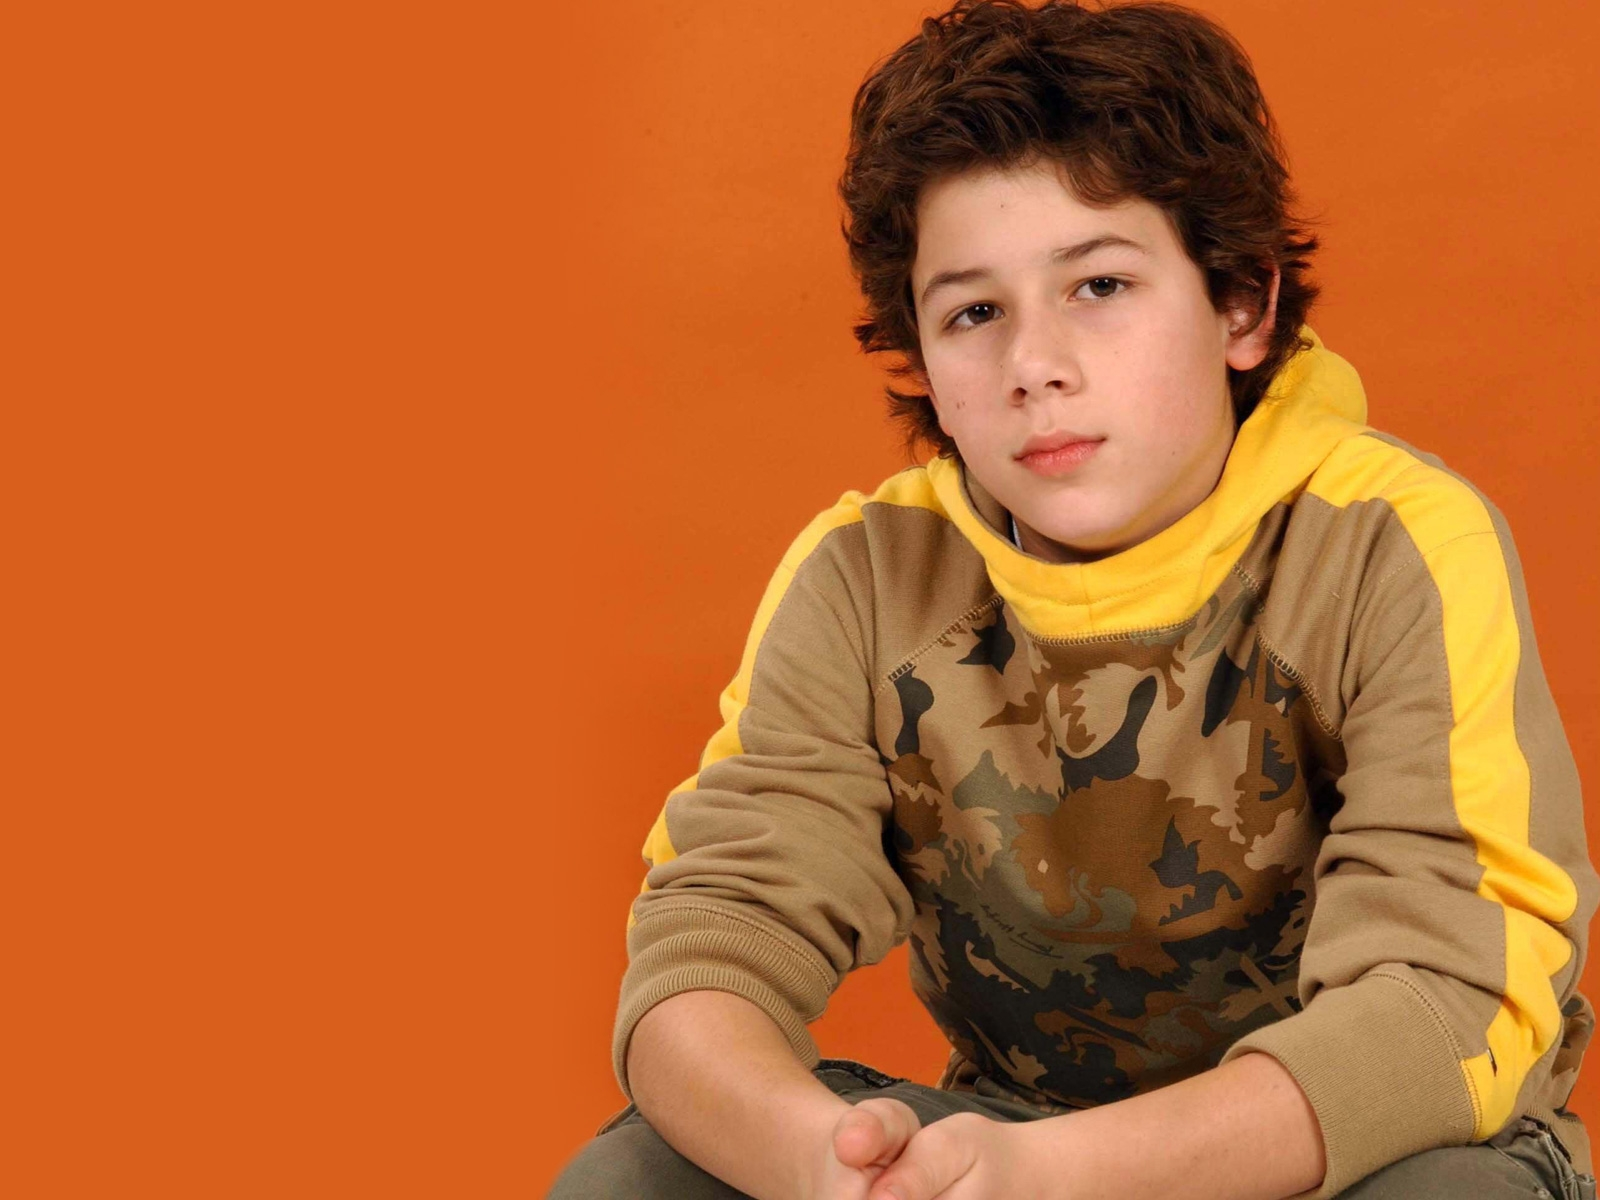 Nick Jonas childhood photo one at Wallpaperscraft.com